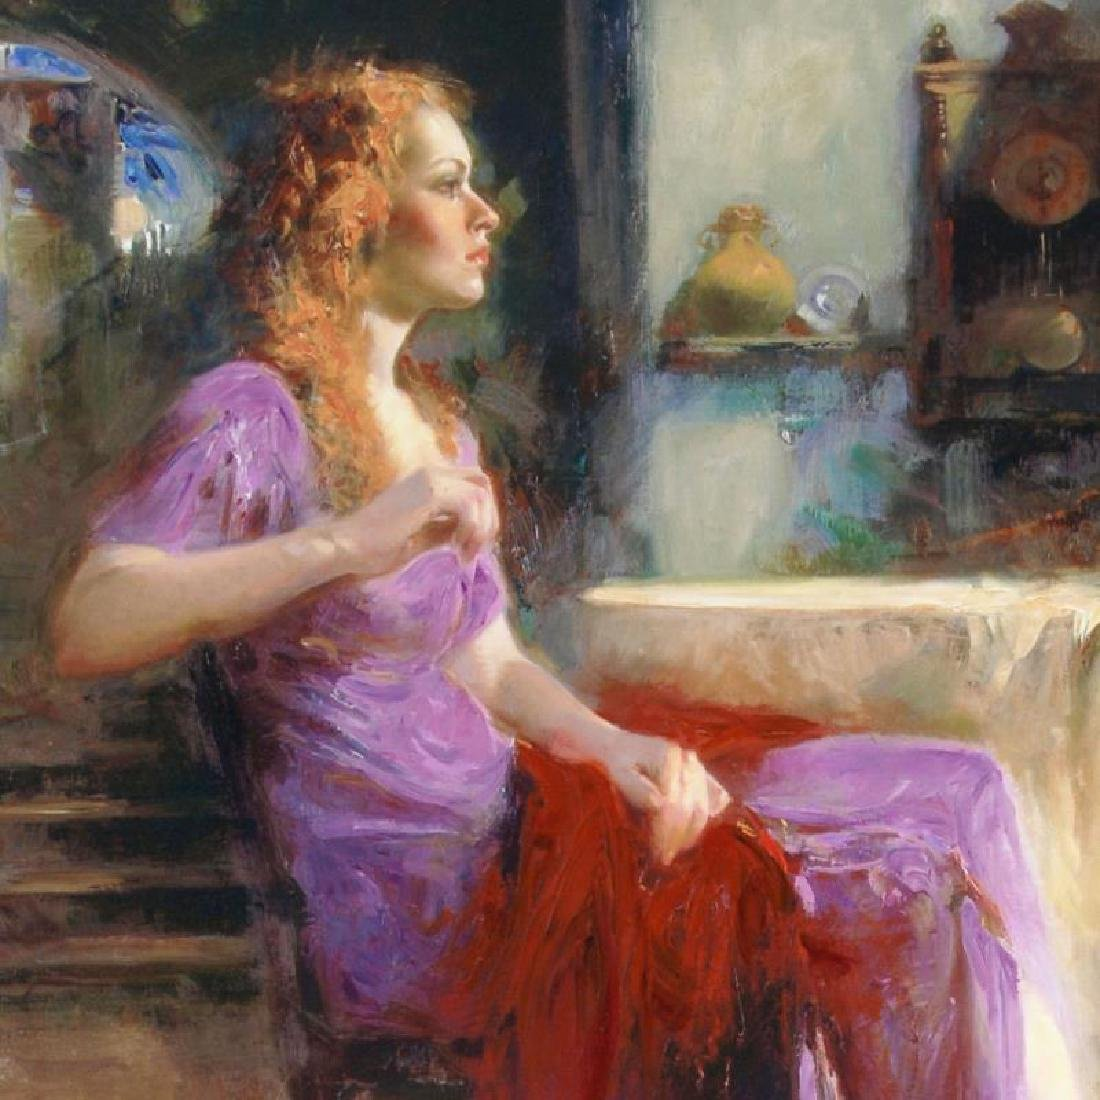 Longing For by Pino (1939-2010) - 2